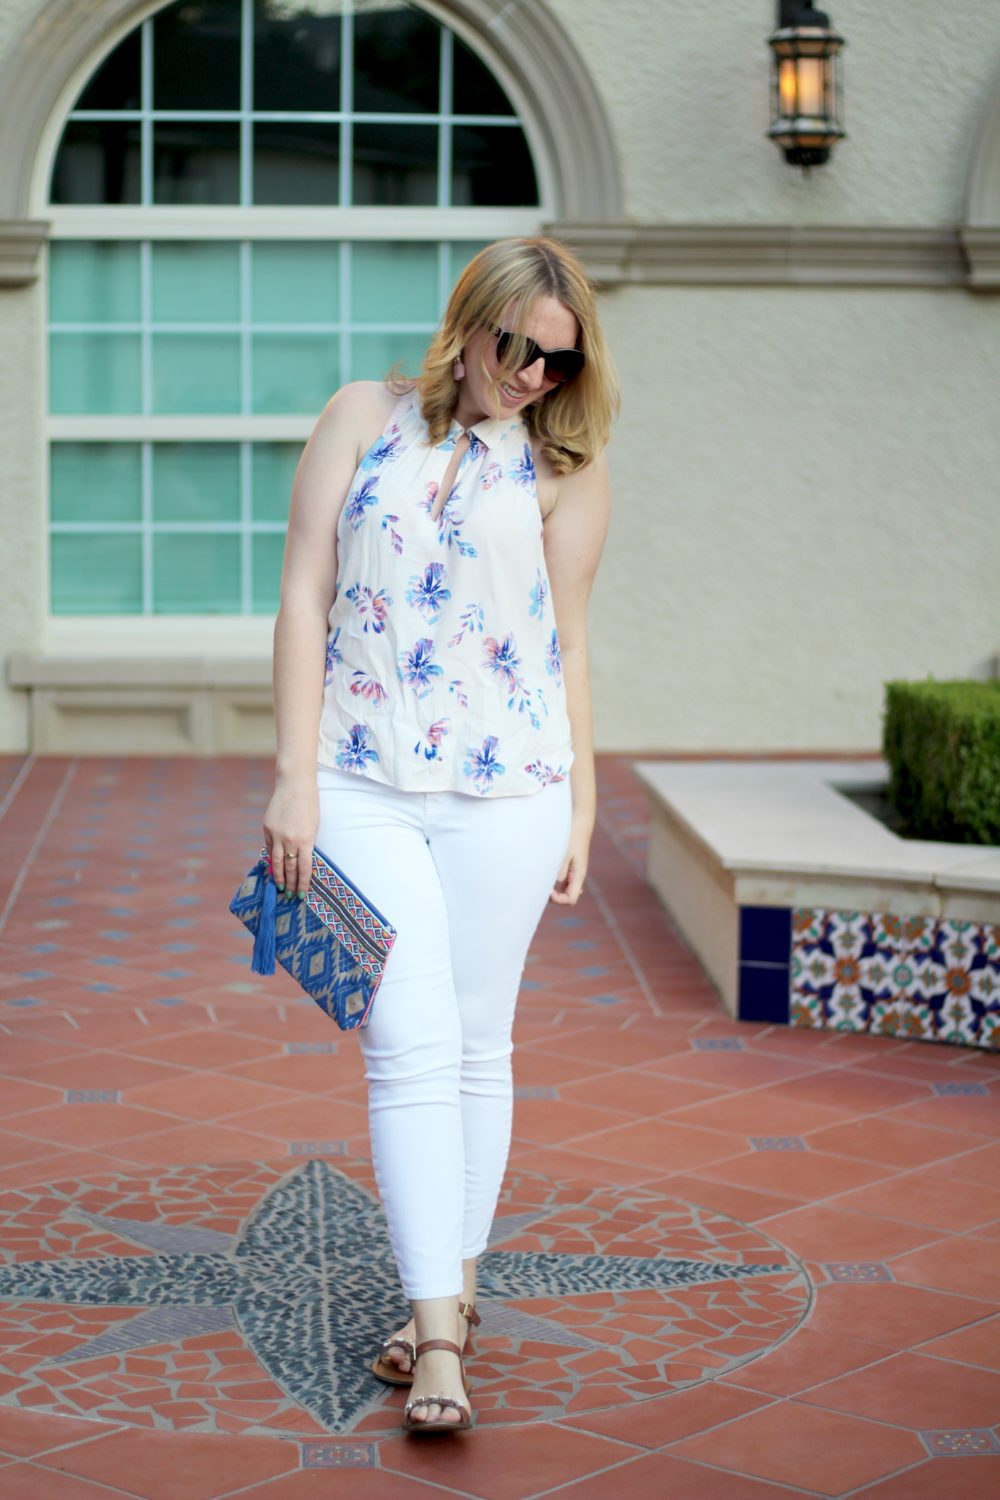 Floral Racerback Blouse, Rent the Runway top, ASTR shirt, sleeveless